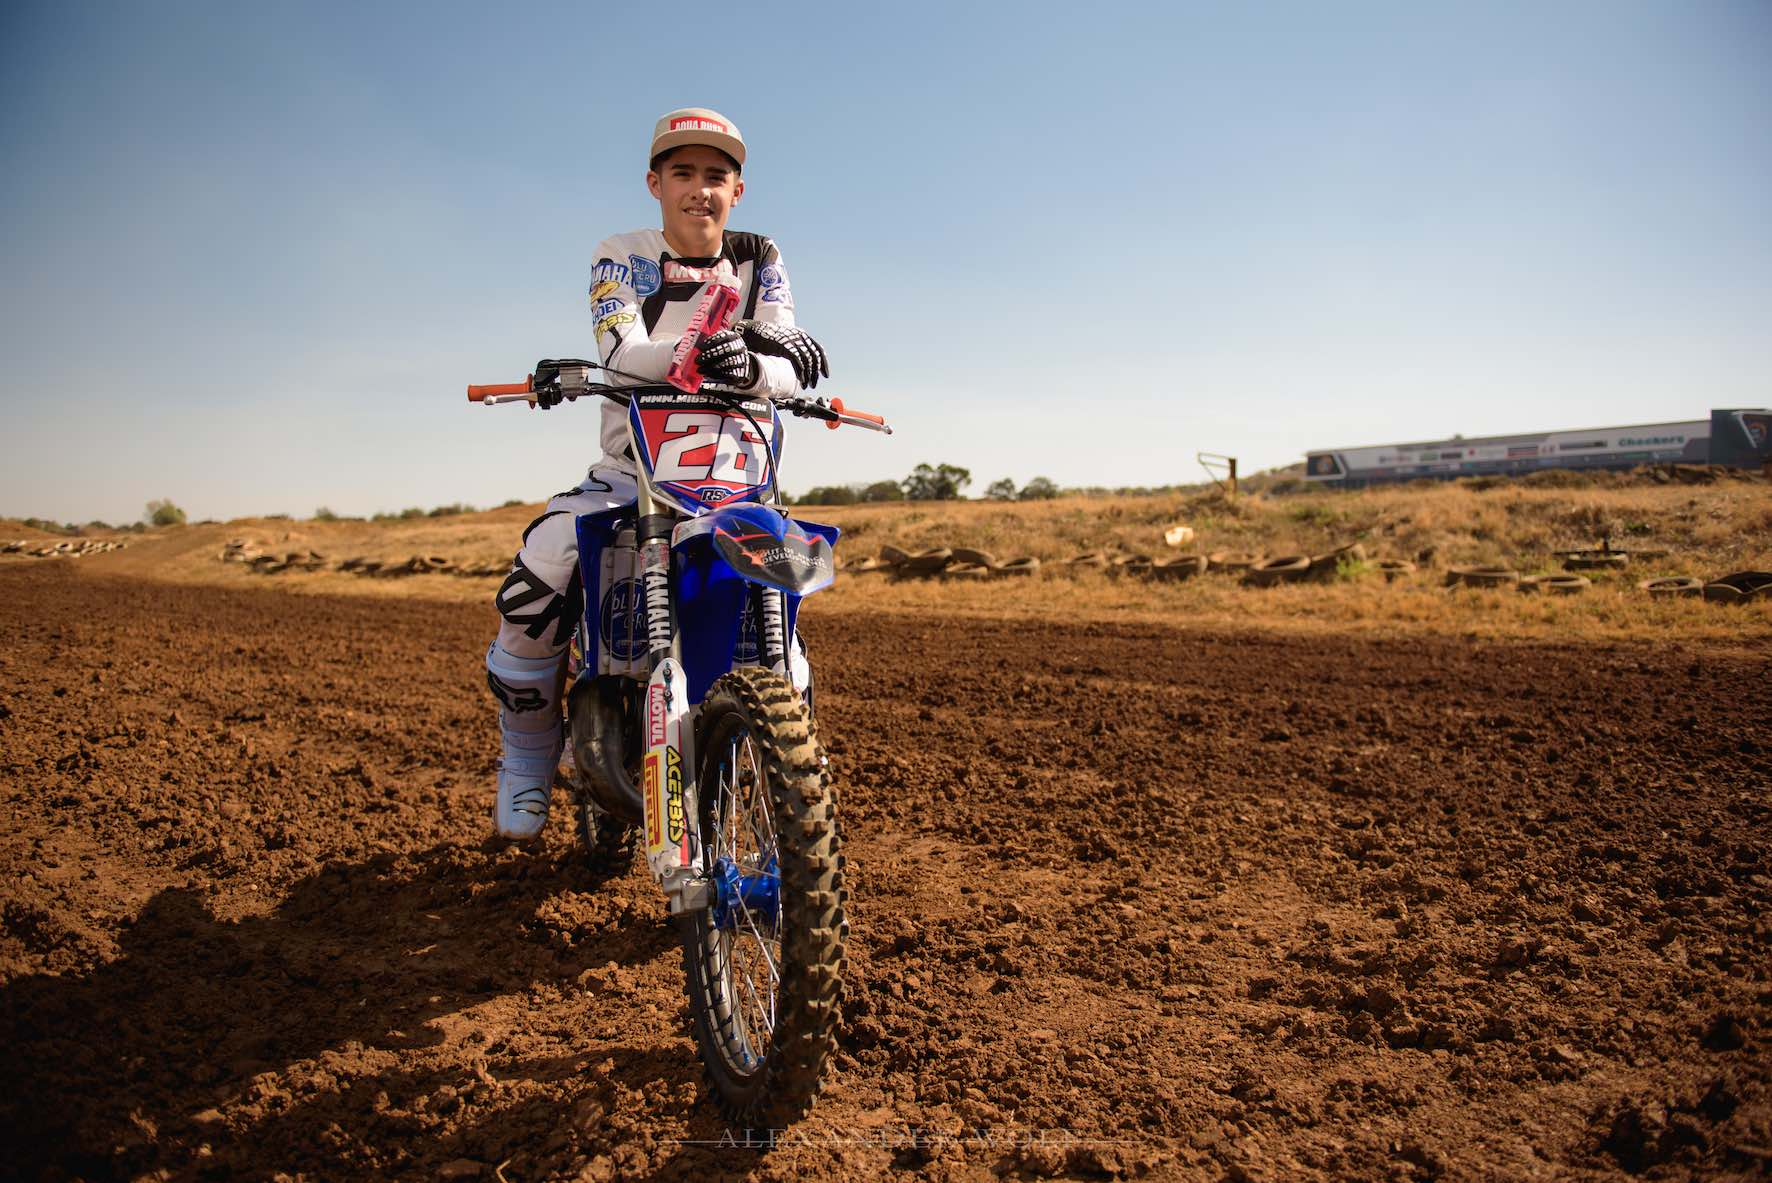 Meet Up and Coming Motocross Rider Miguel de Waal